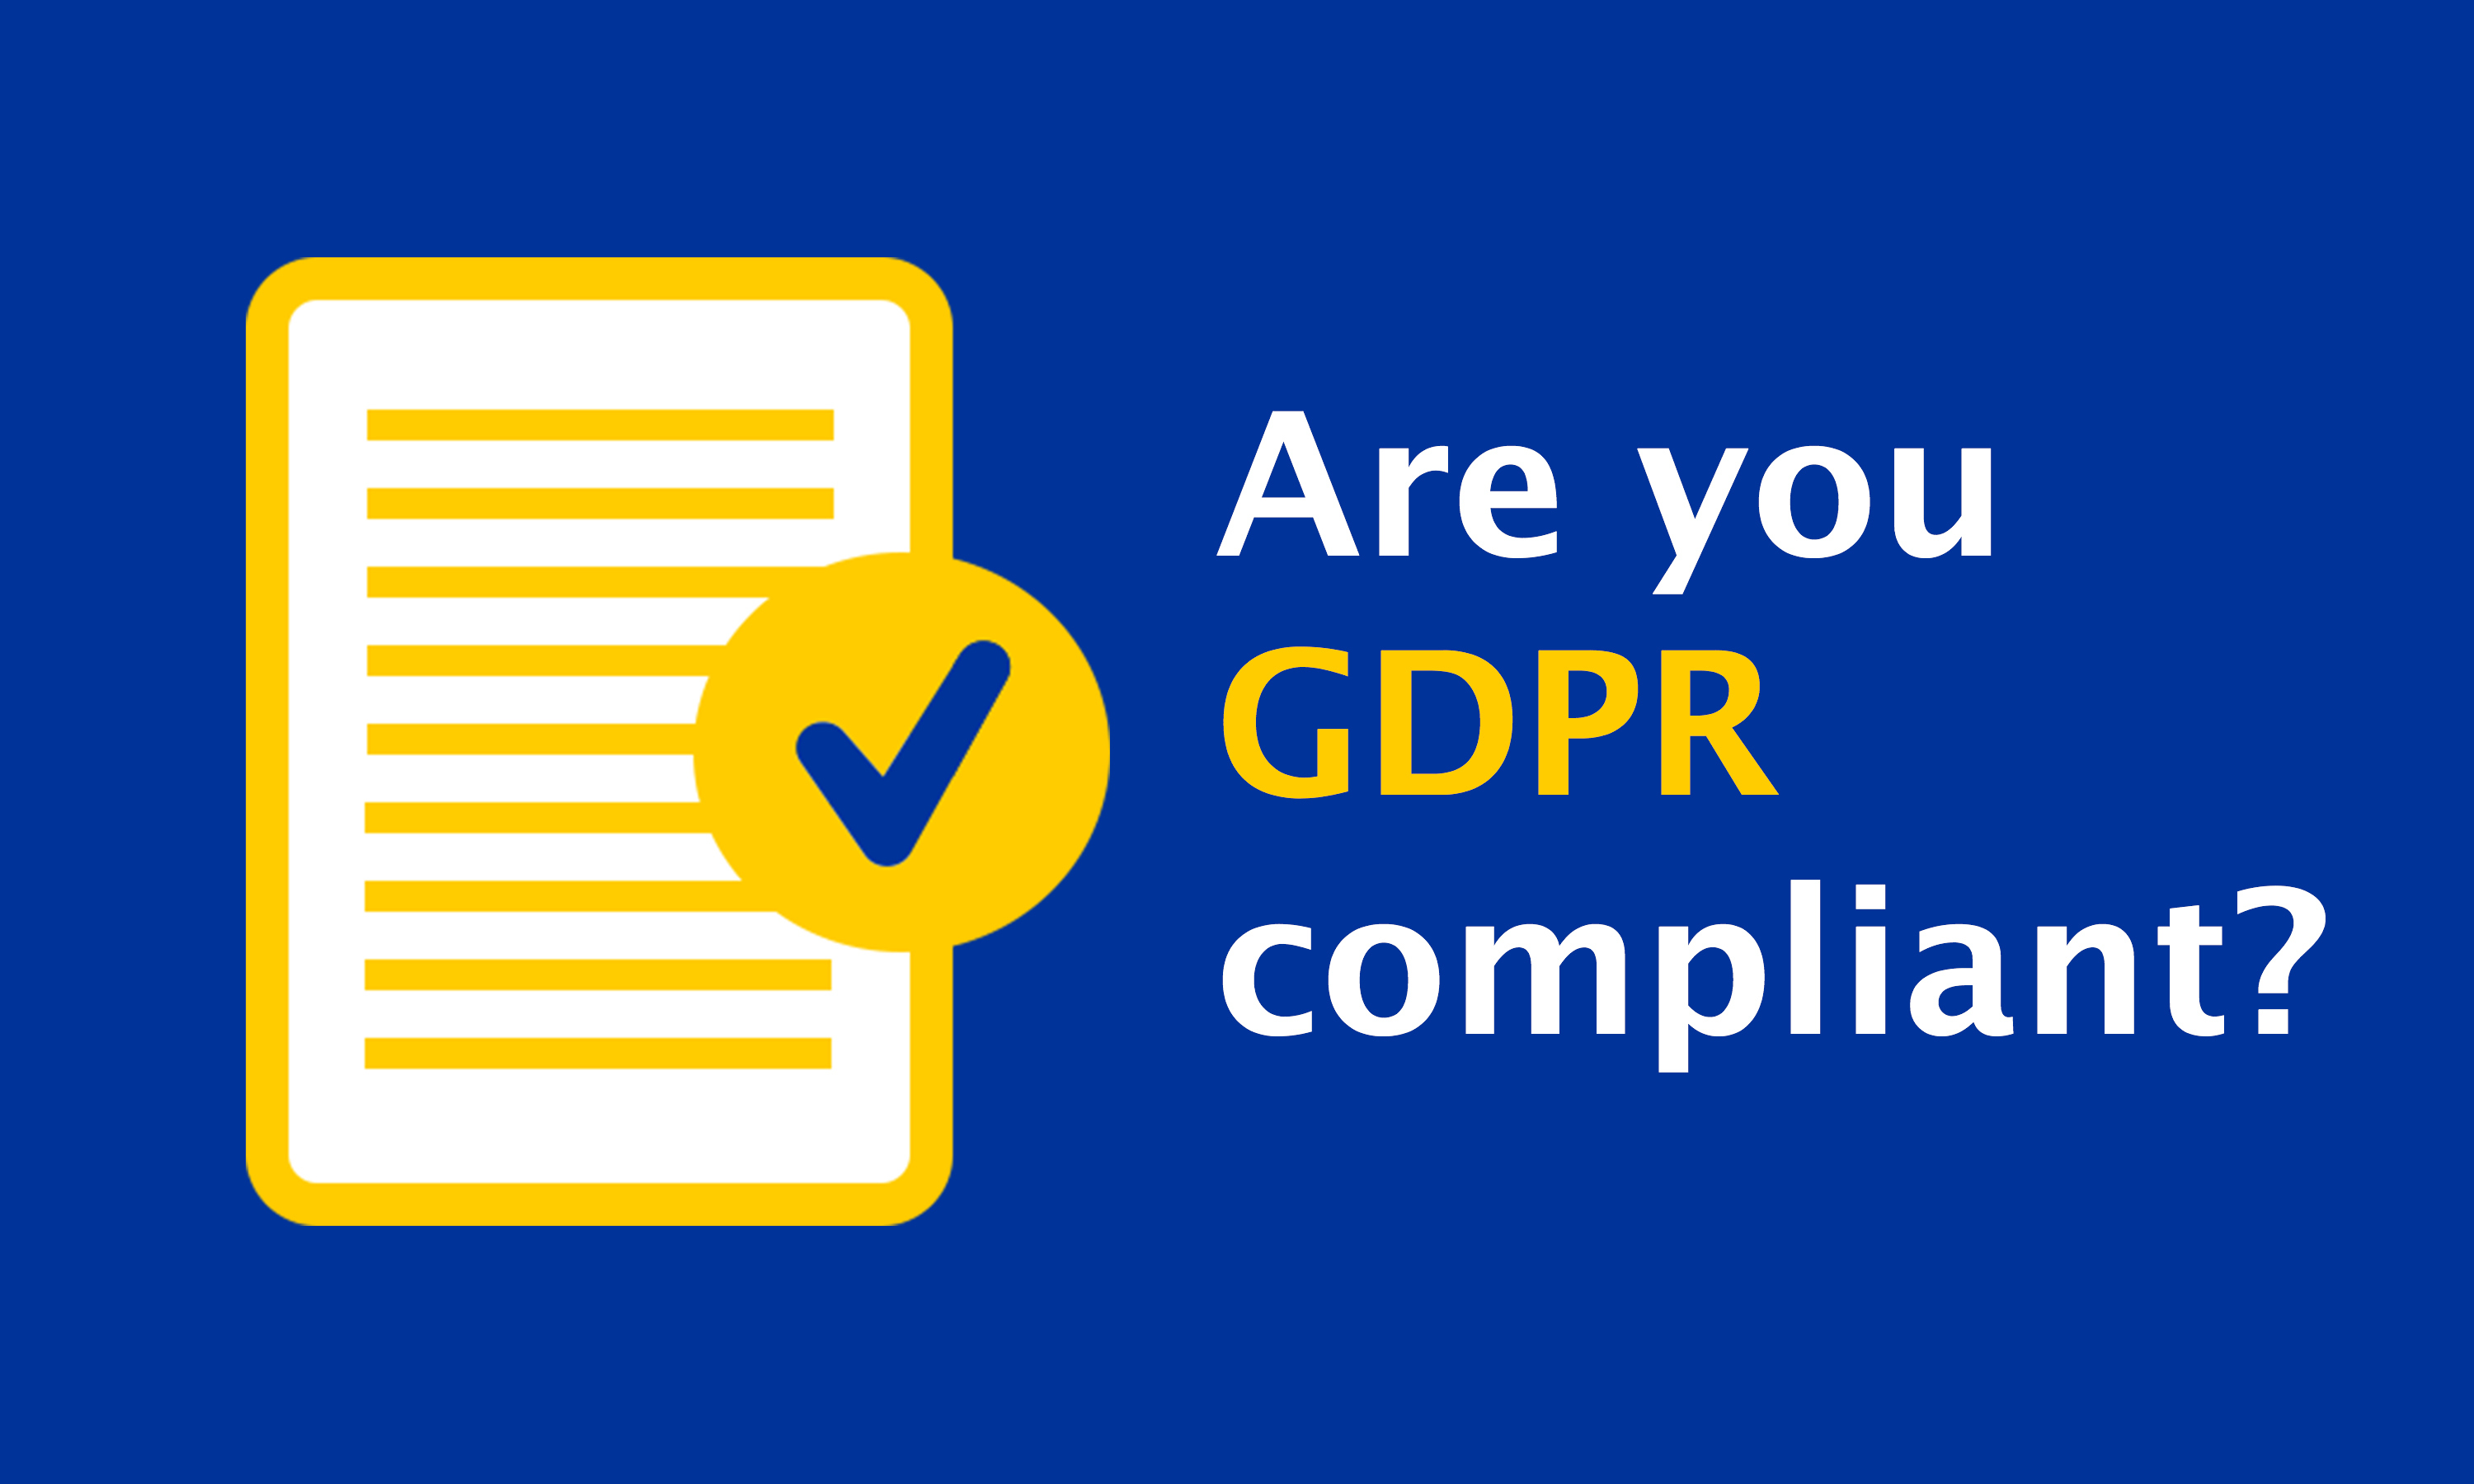 GDPR Compliance: Will GDPR Affect Your Nonprofit?